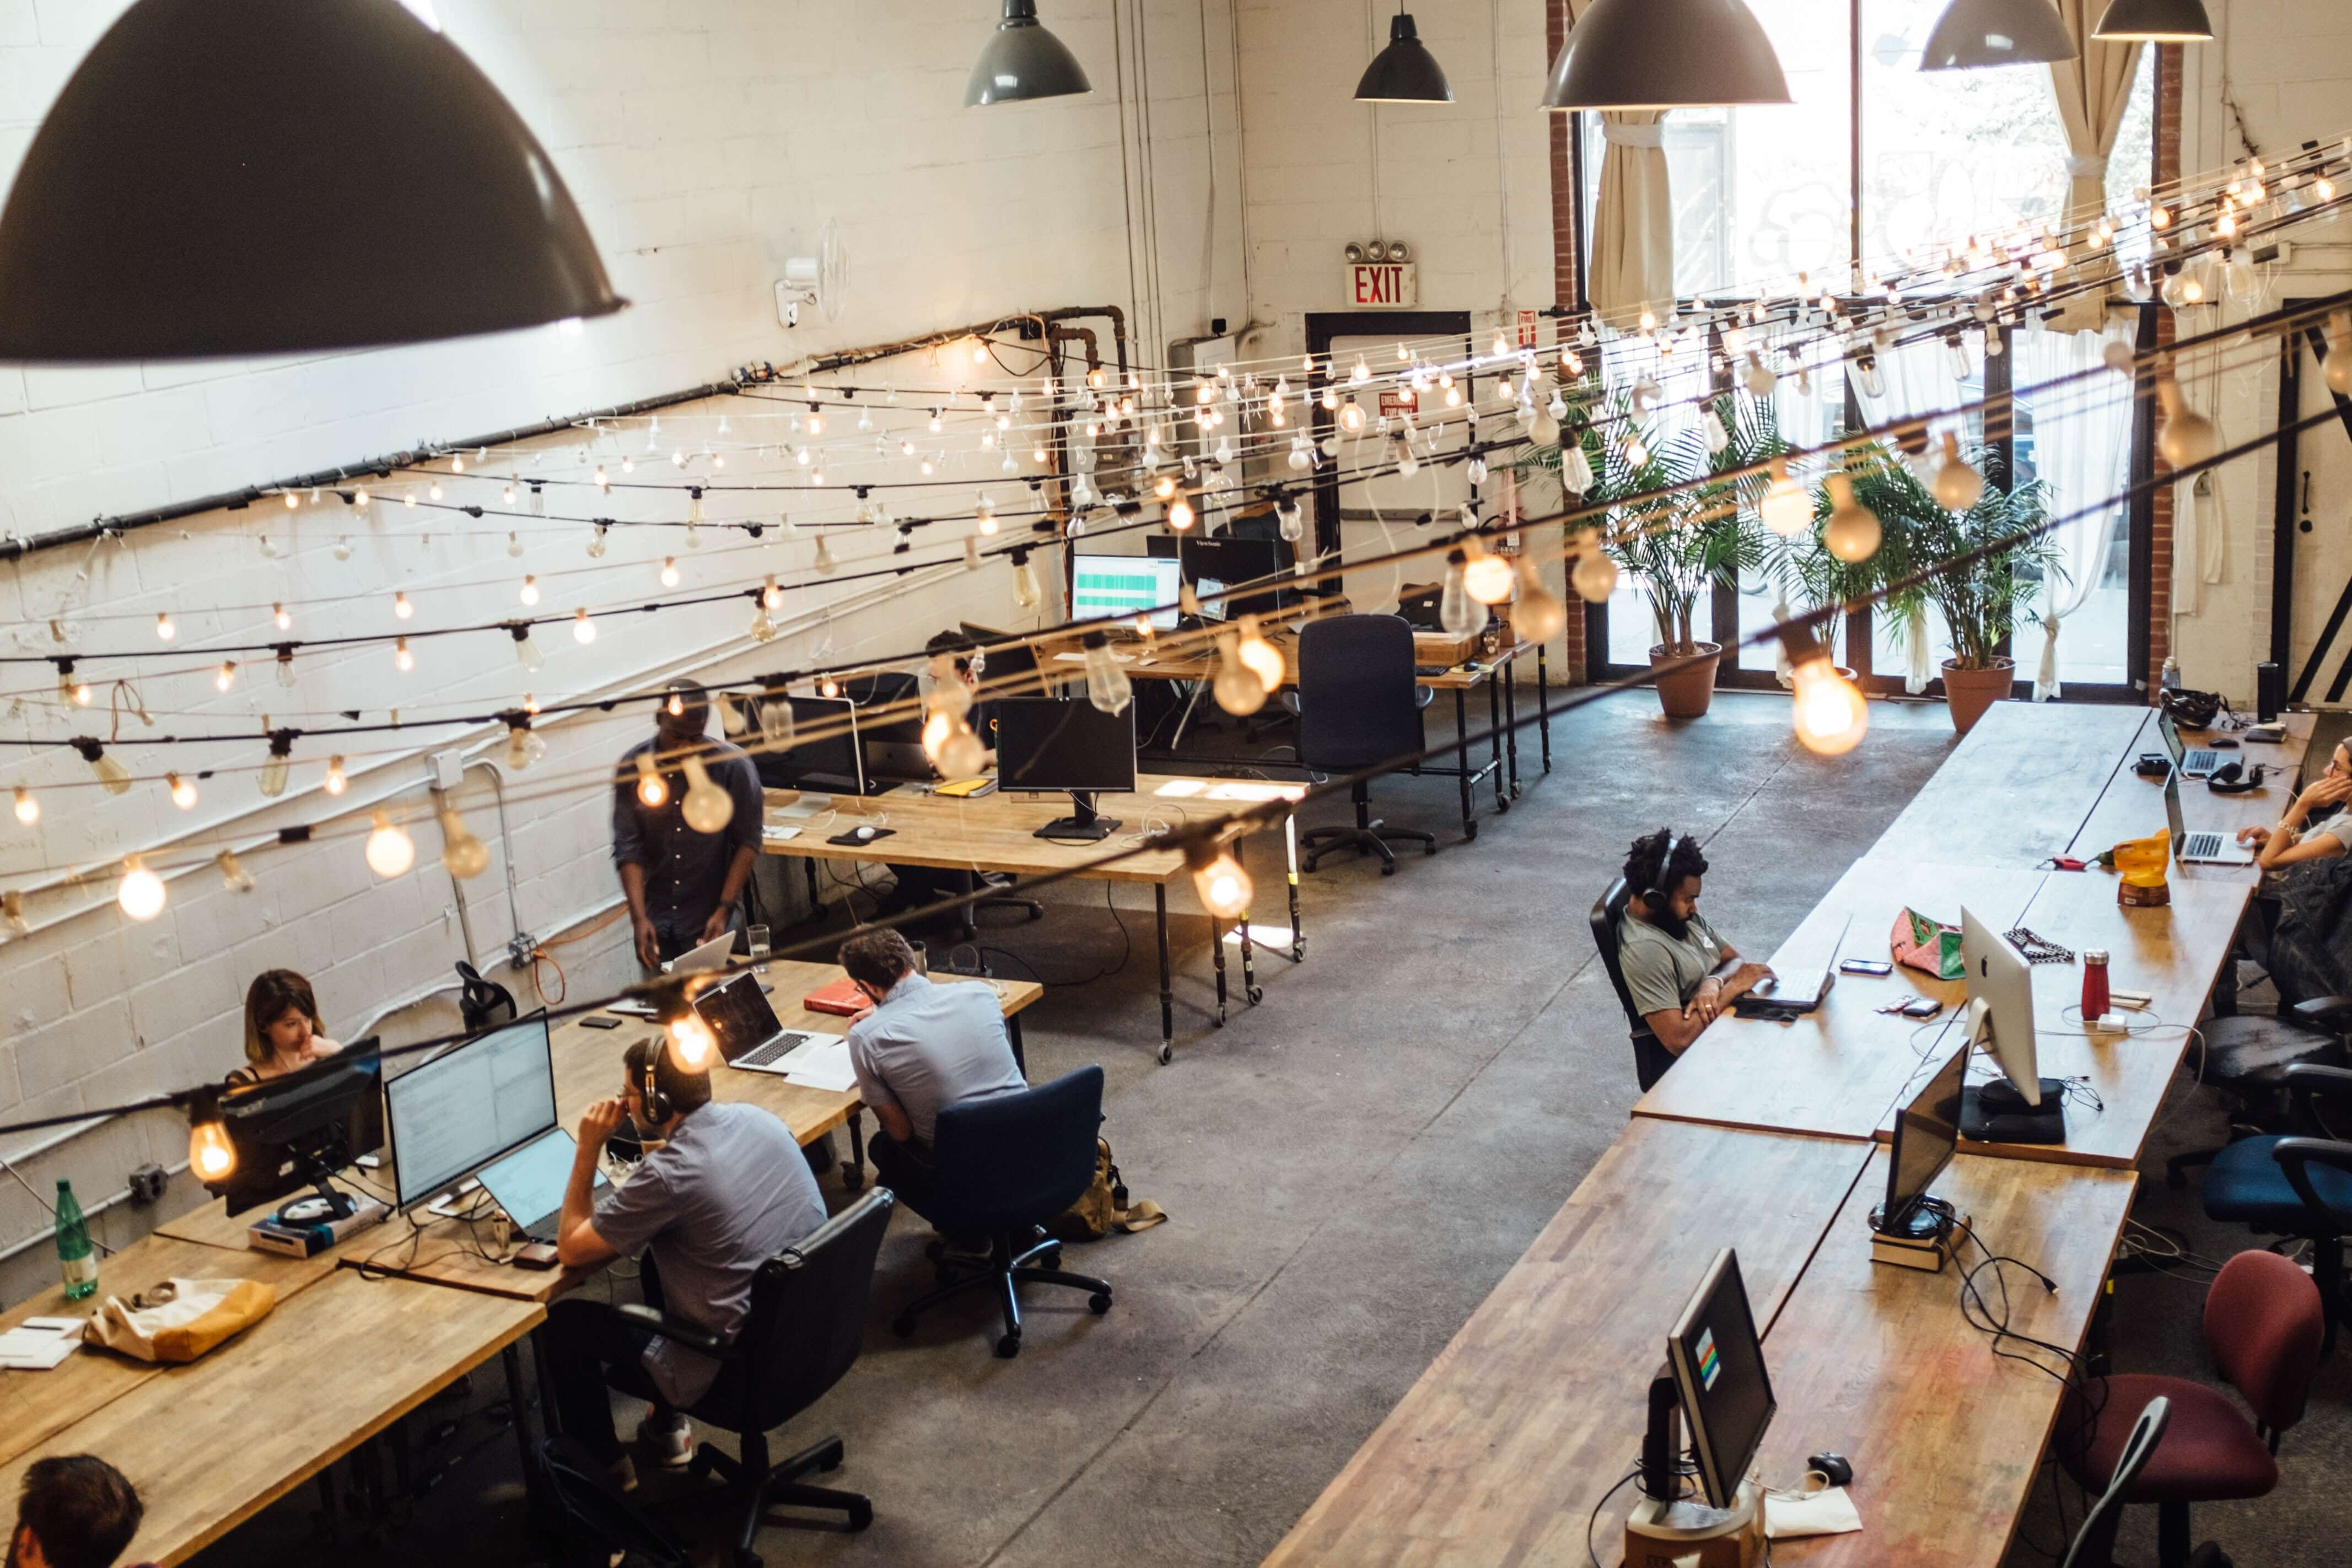 The Role of Community Manager in a Coworking Space